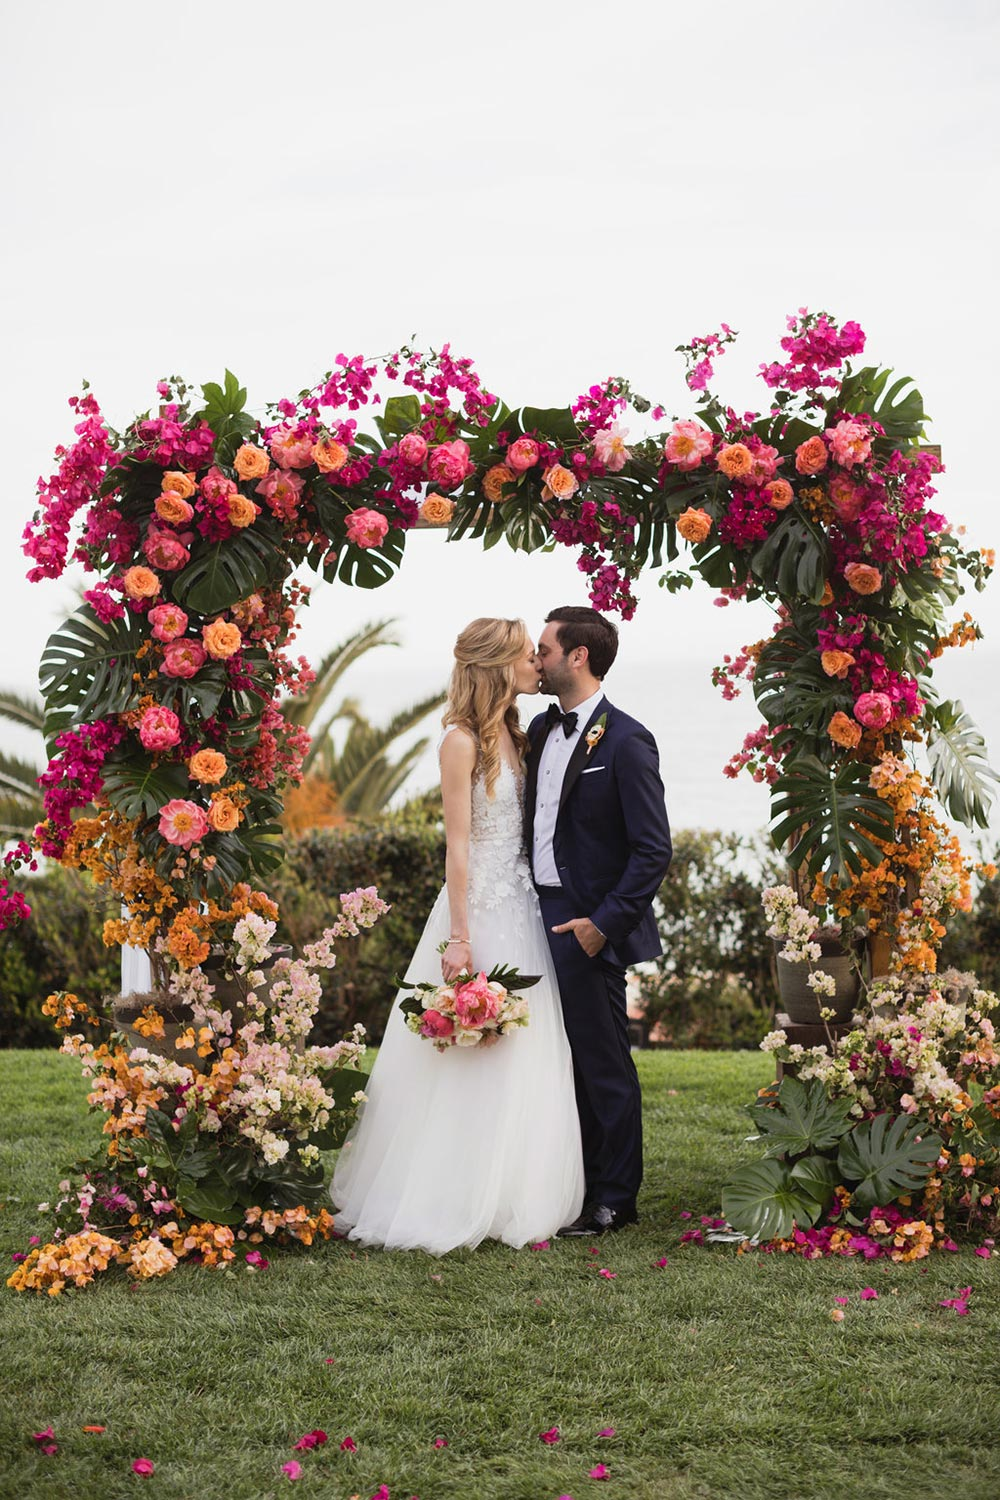 Tropical ombre arch with warm tones